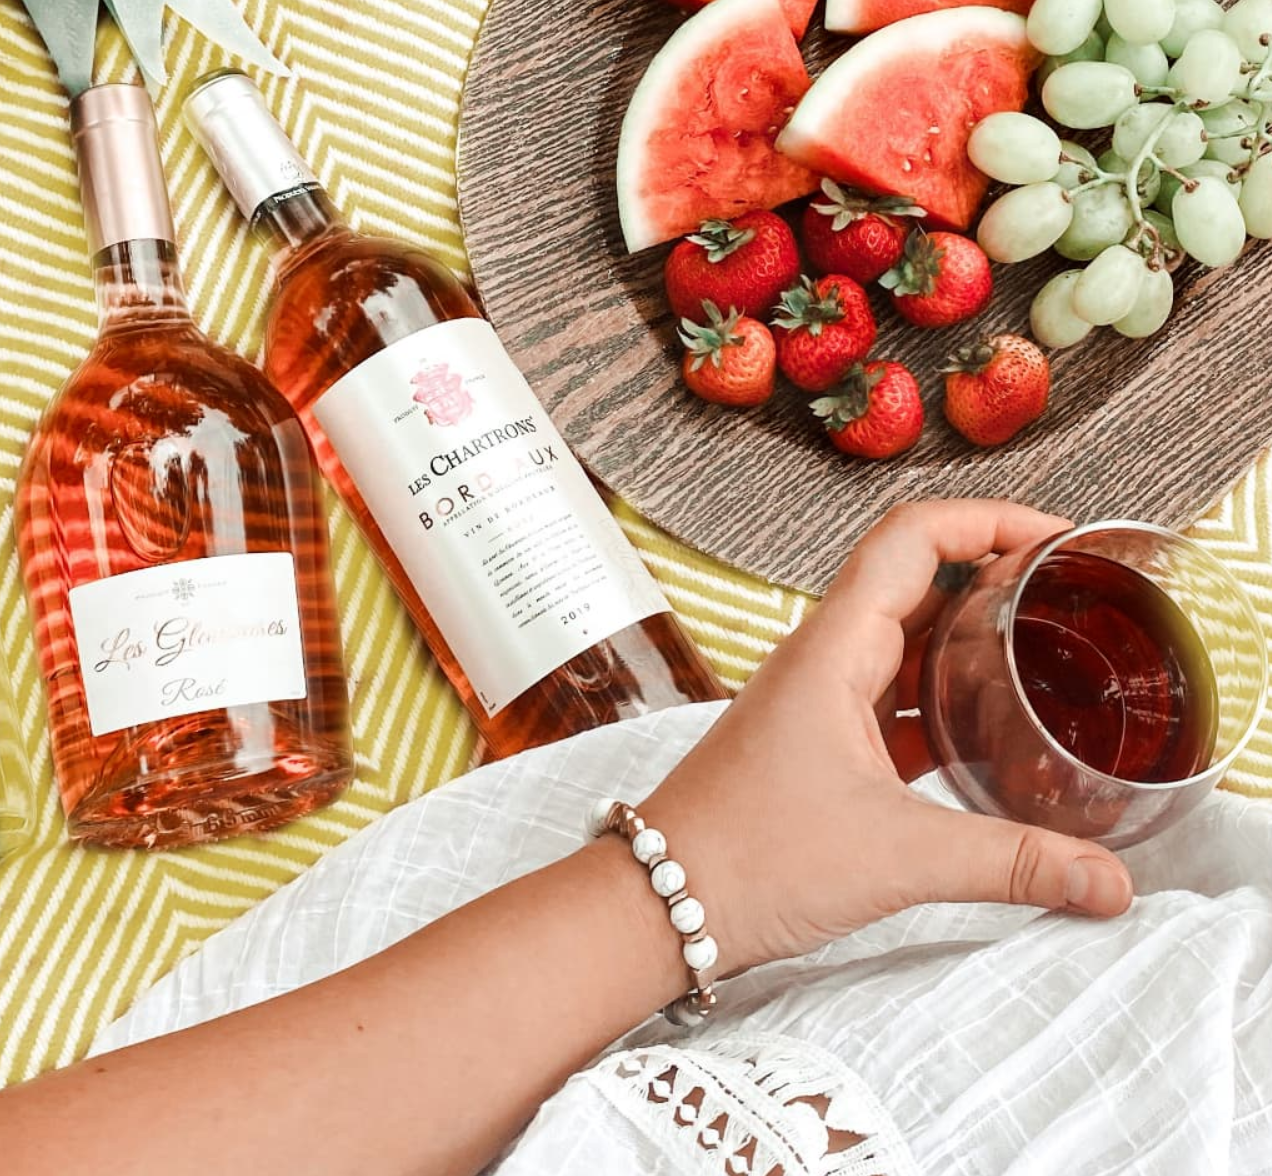 Wine Insiders: Bottles of Select Wines $5-6 Shipped after $25 Amex Offer Promo